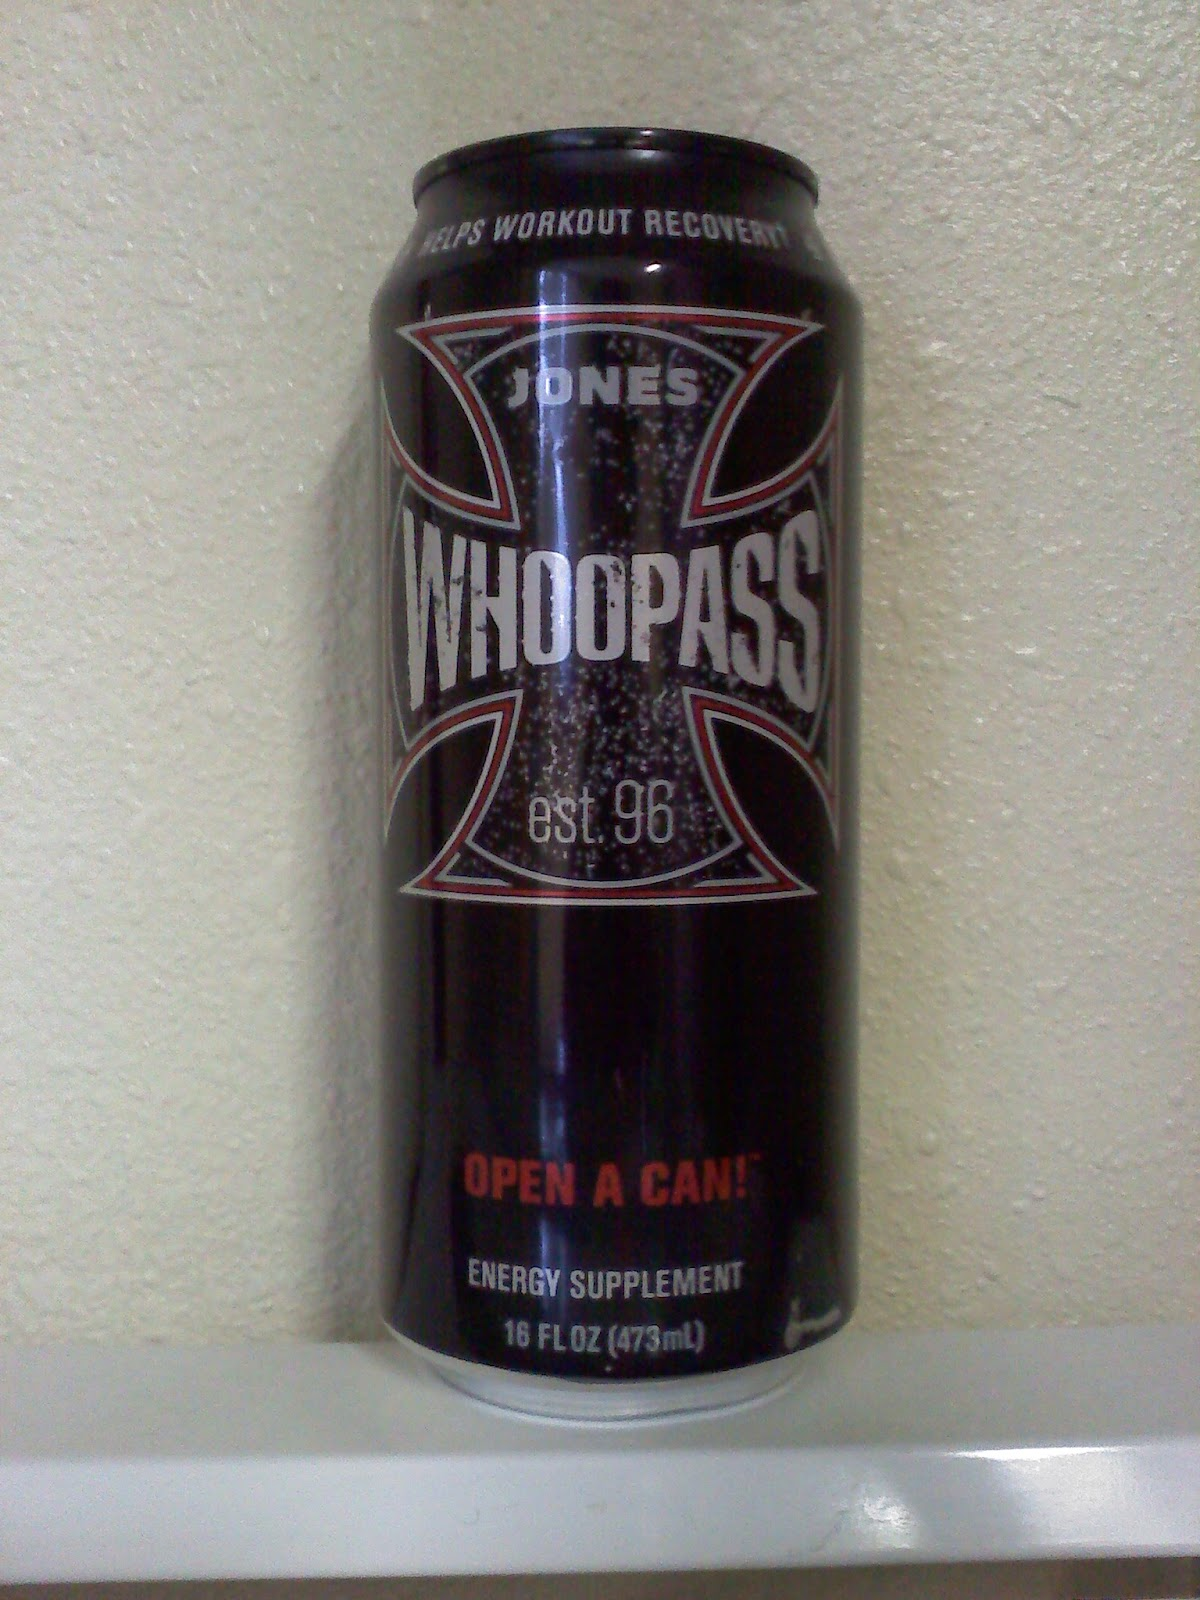 CAFFEINE!: Review for Whoopass